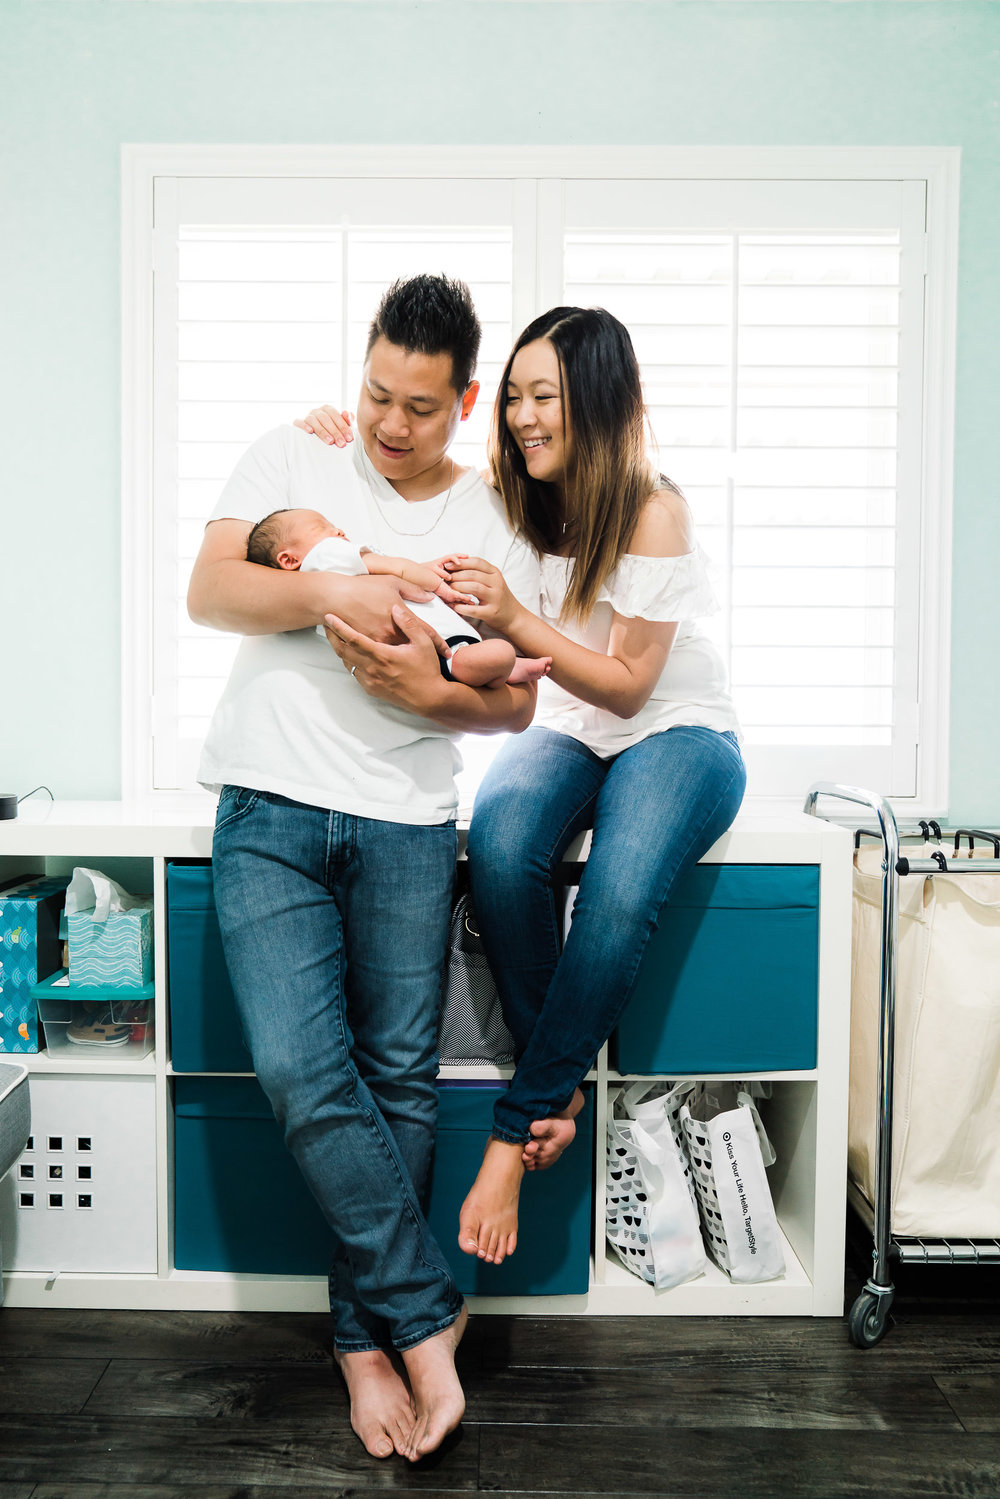 Bryan-Miraflor-Photography-Caden-Josie-Chris-Newborn-Photo-Session-20180708-063.jpg